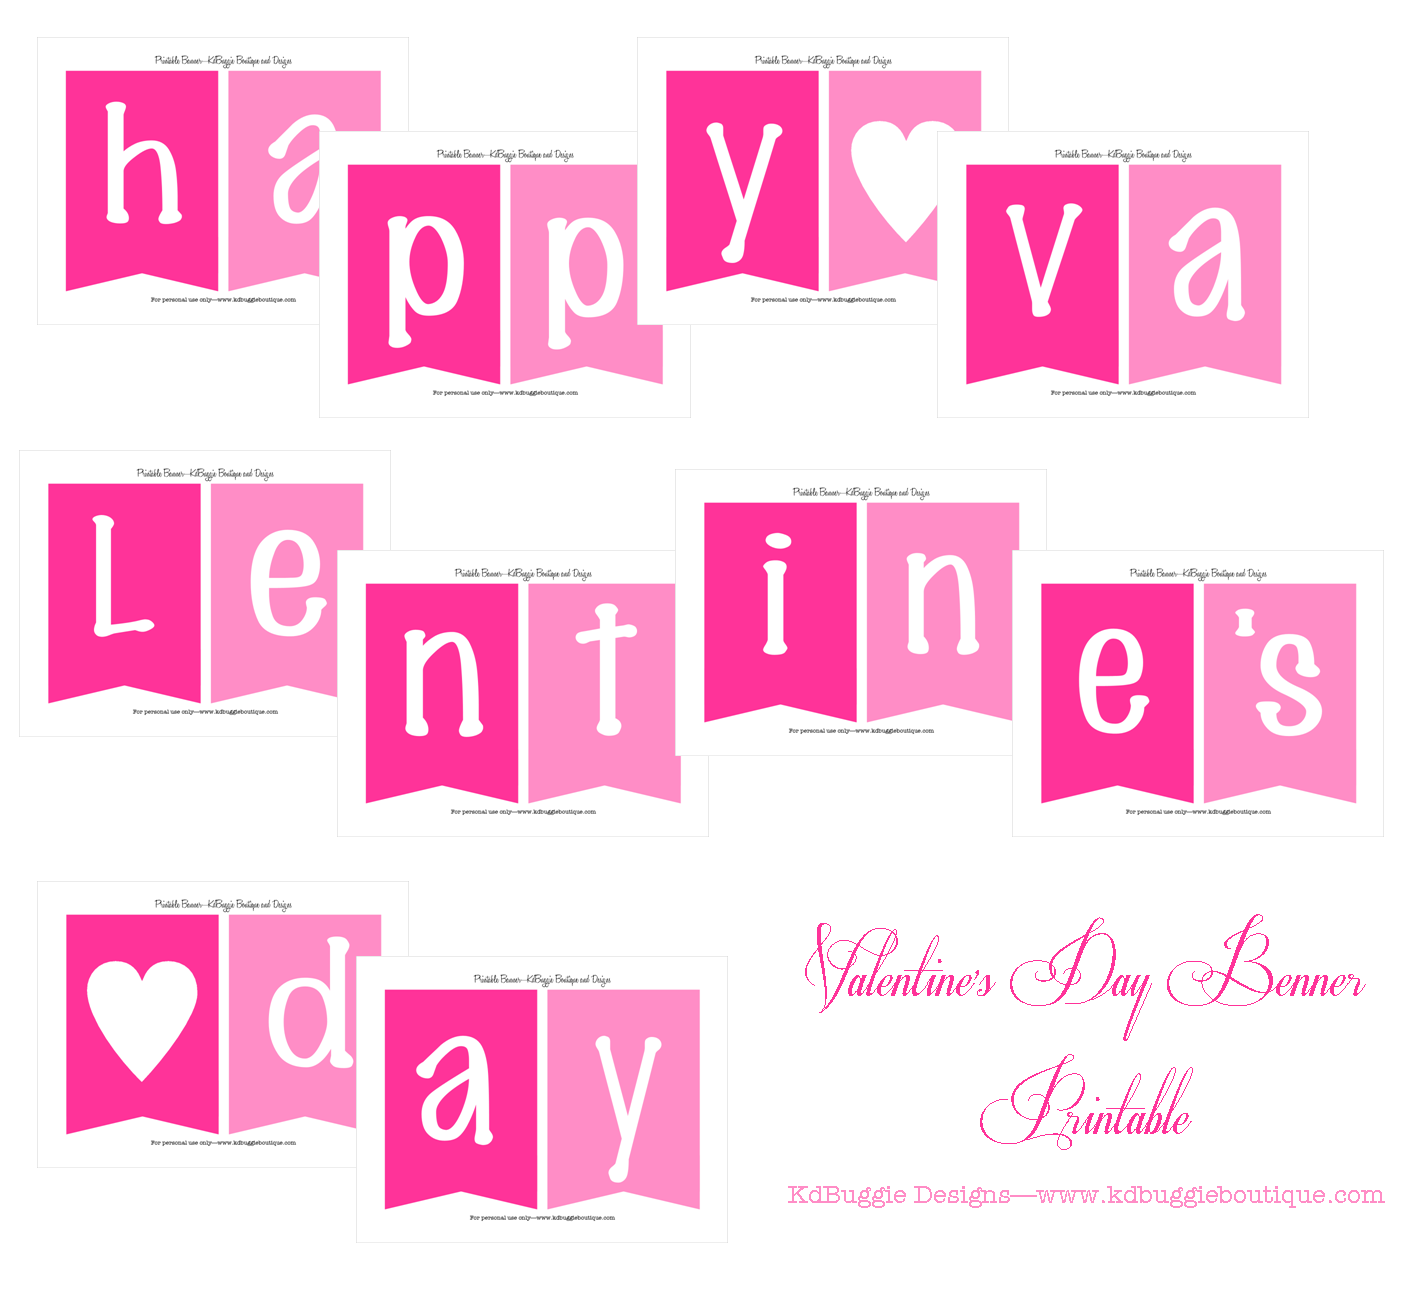 kdbuggie boutique free valentines day banner printable